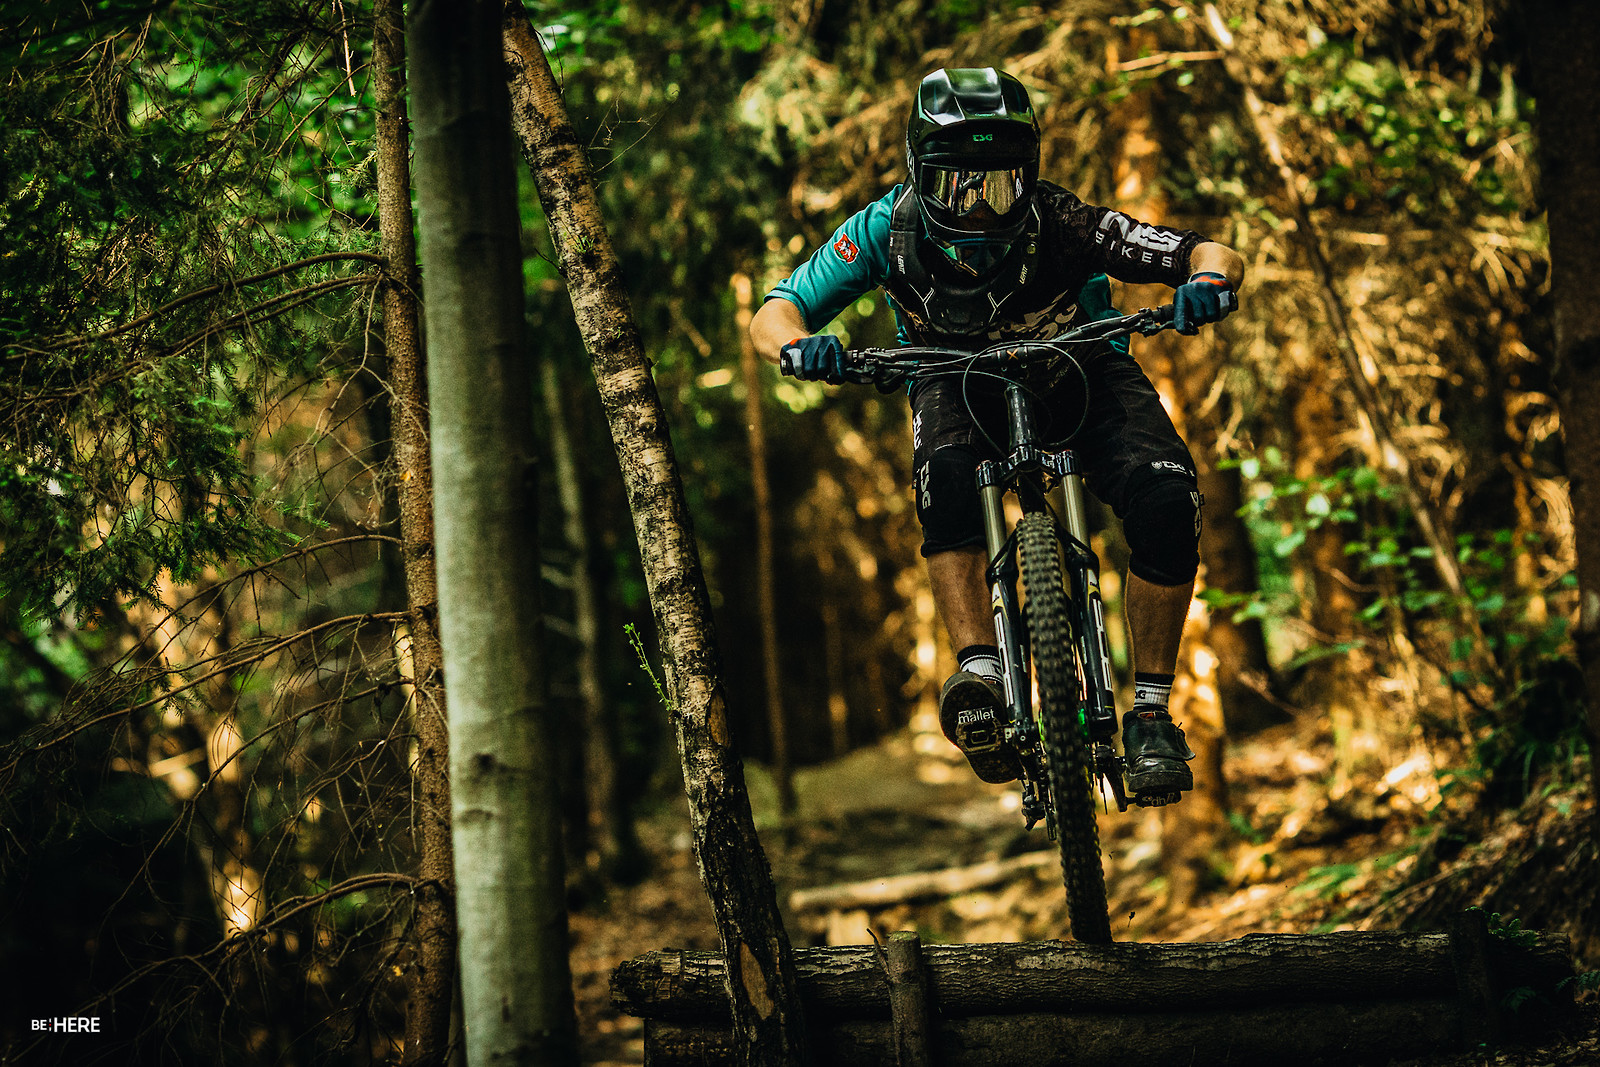 racing mode - Banan - Mountain Biking Pictures - Vital MTB